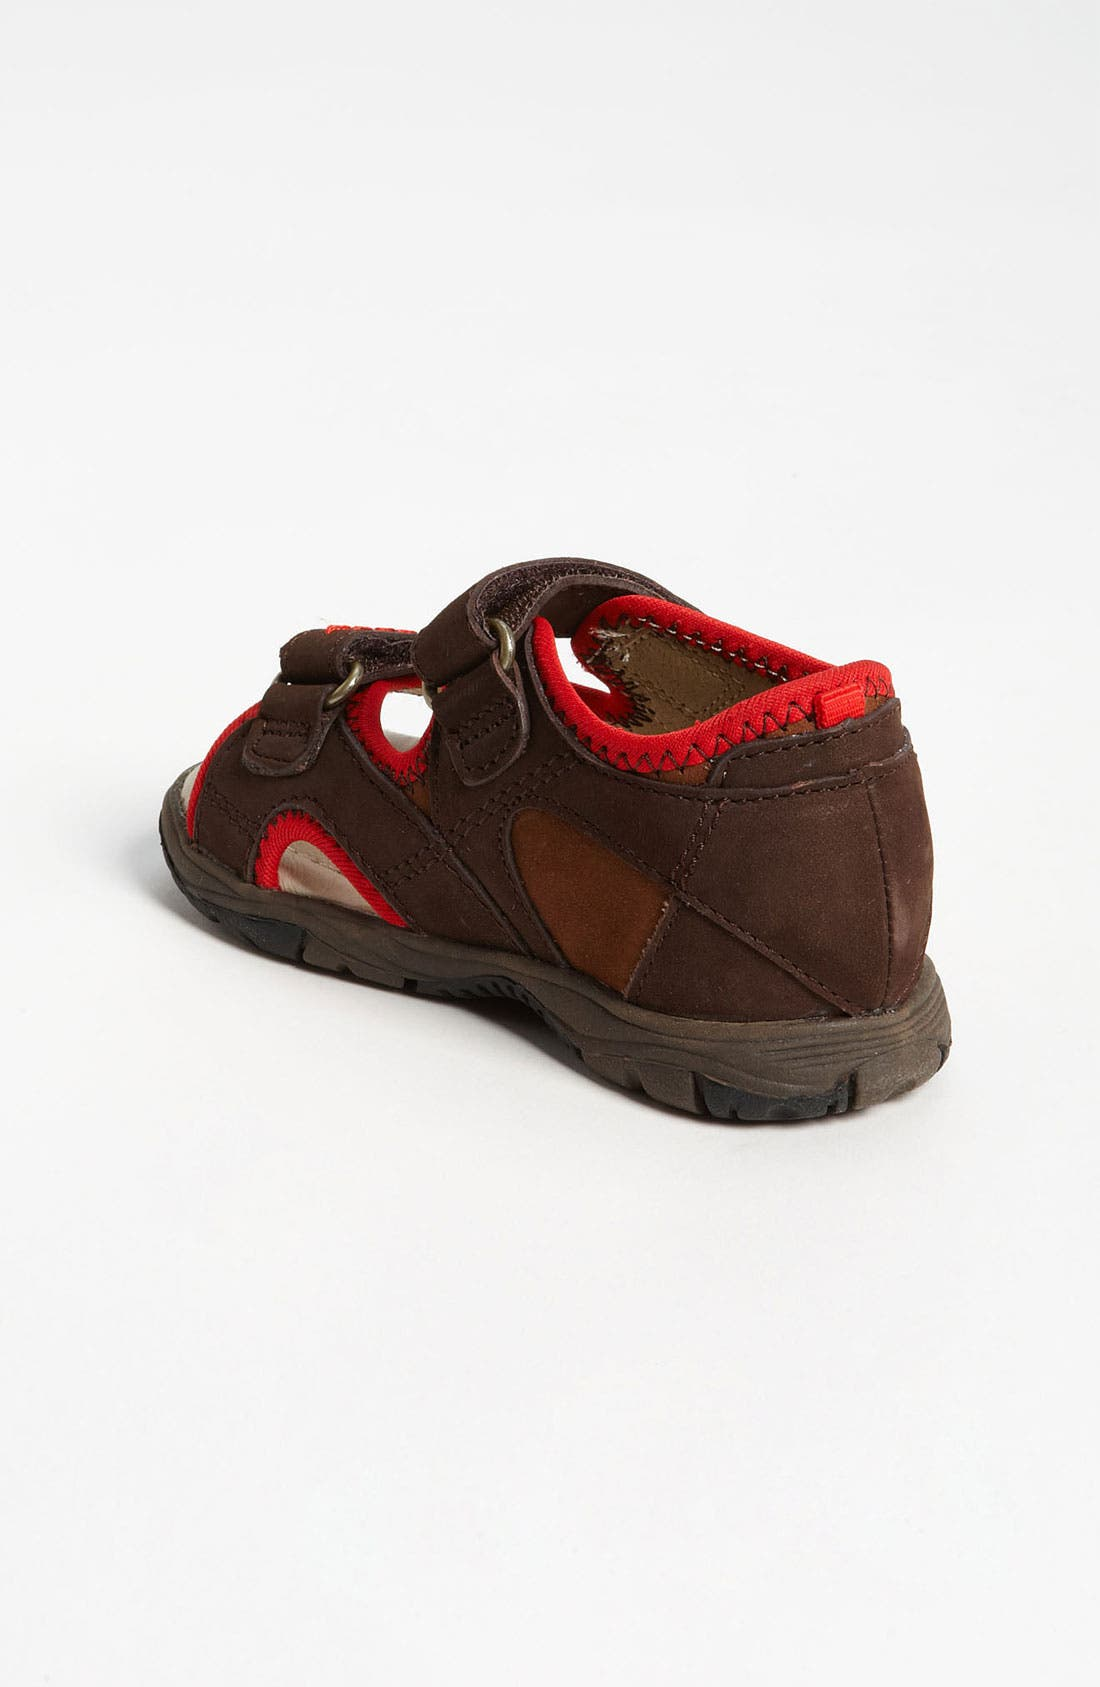 Alternate Image 2  - Umi 'Benet' Sandal (Walker & Toddler)